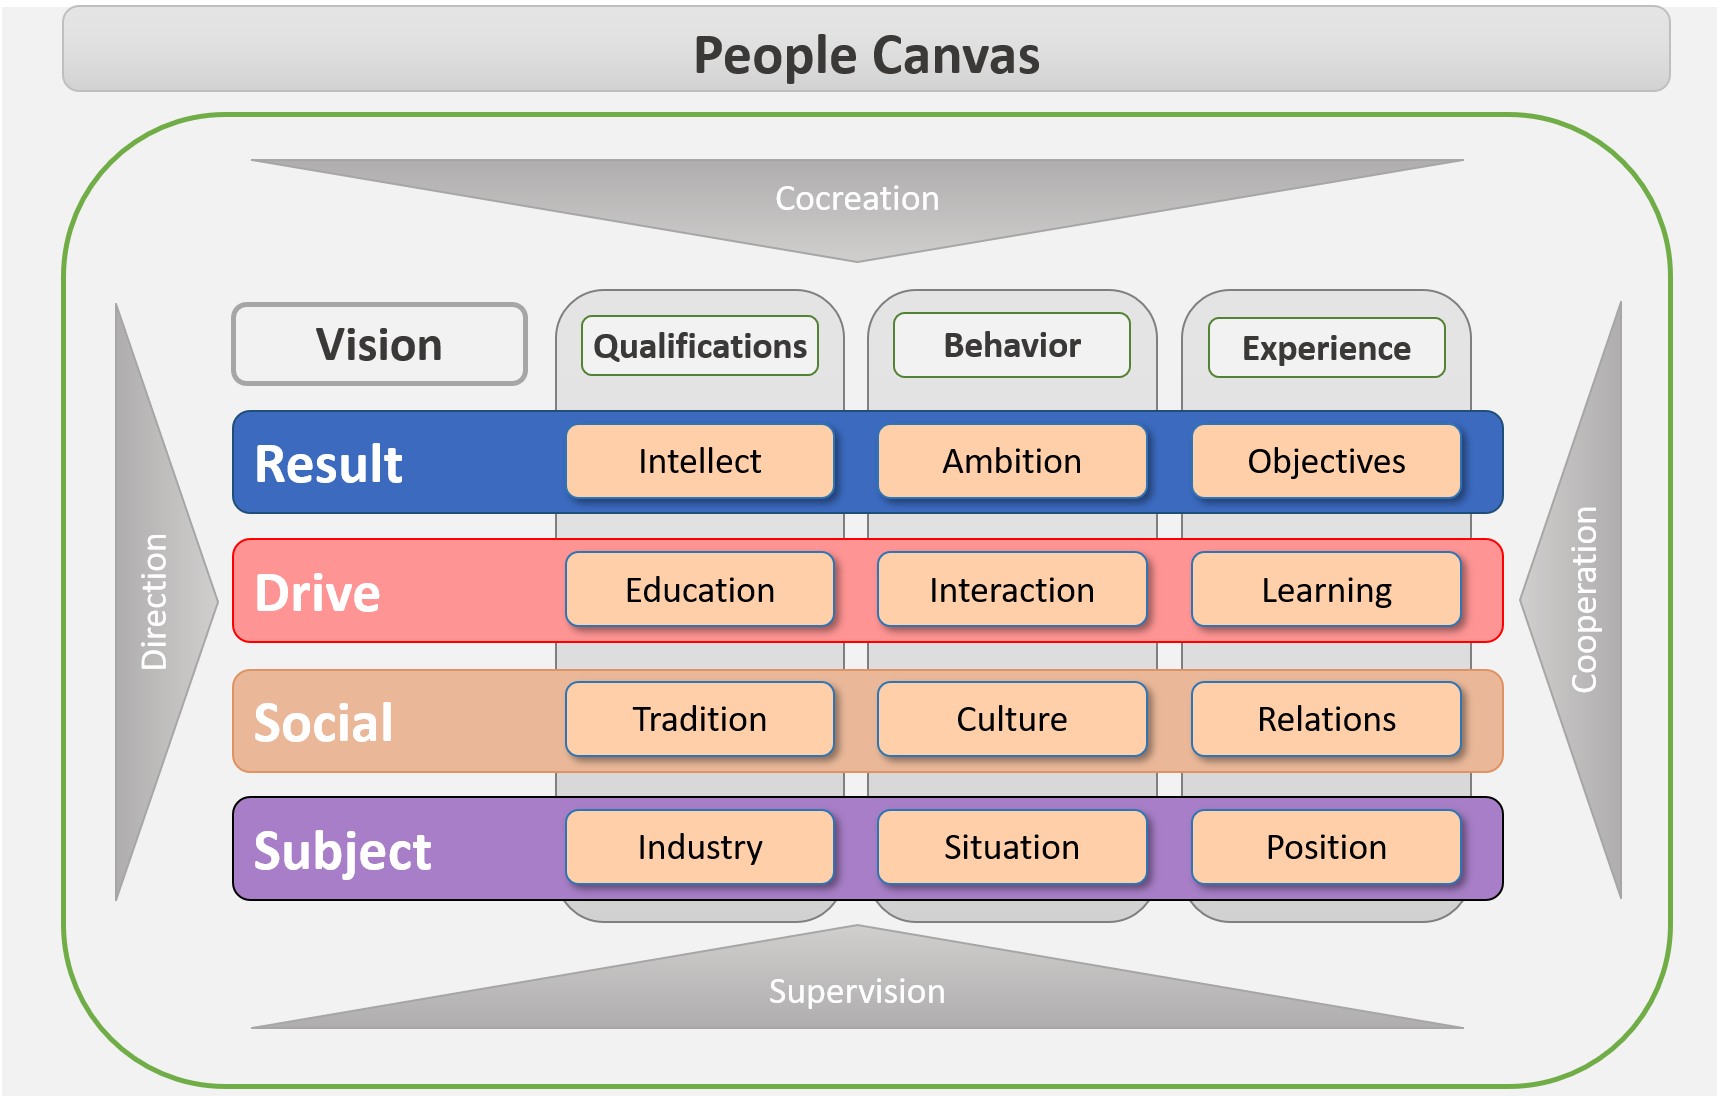 People Canvas